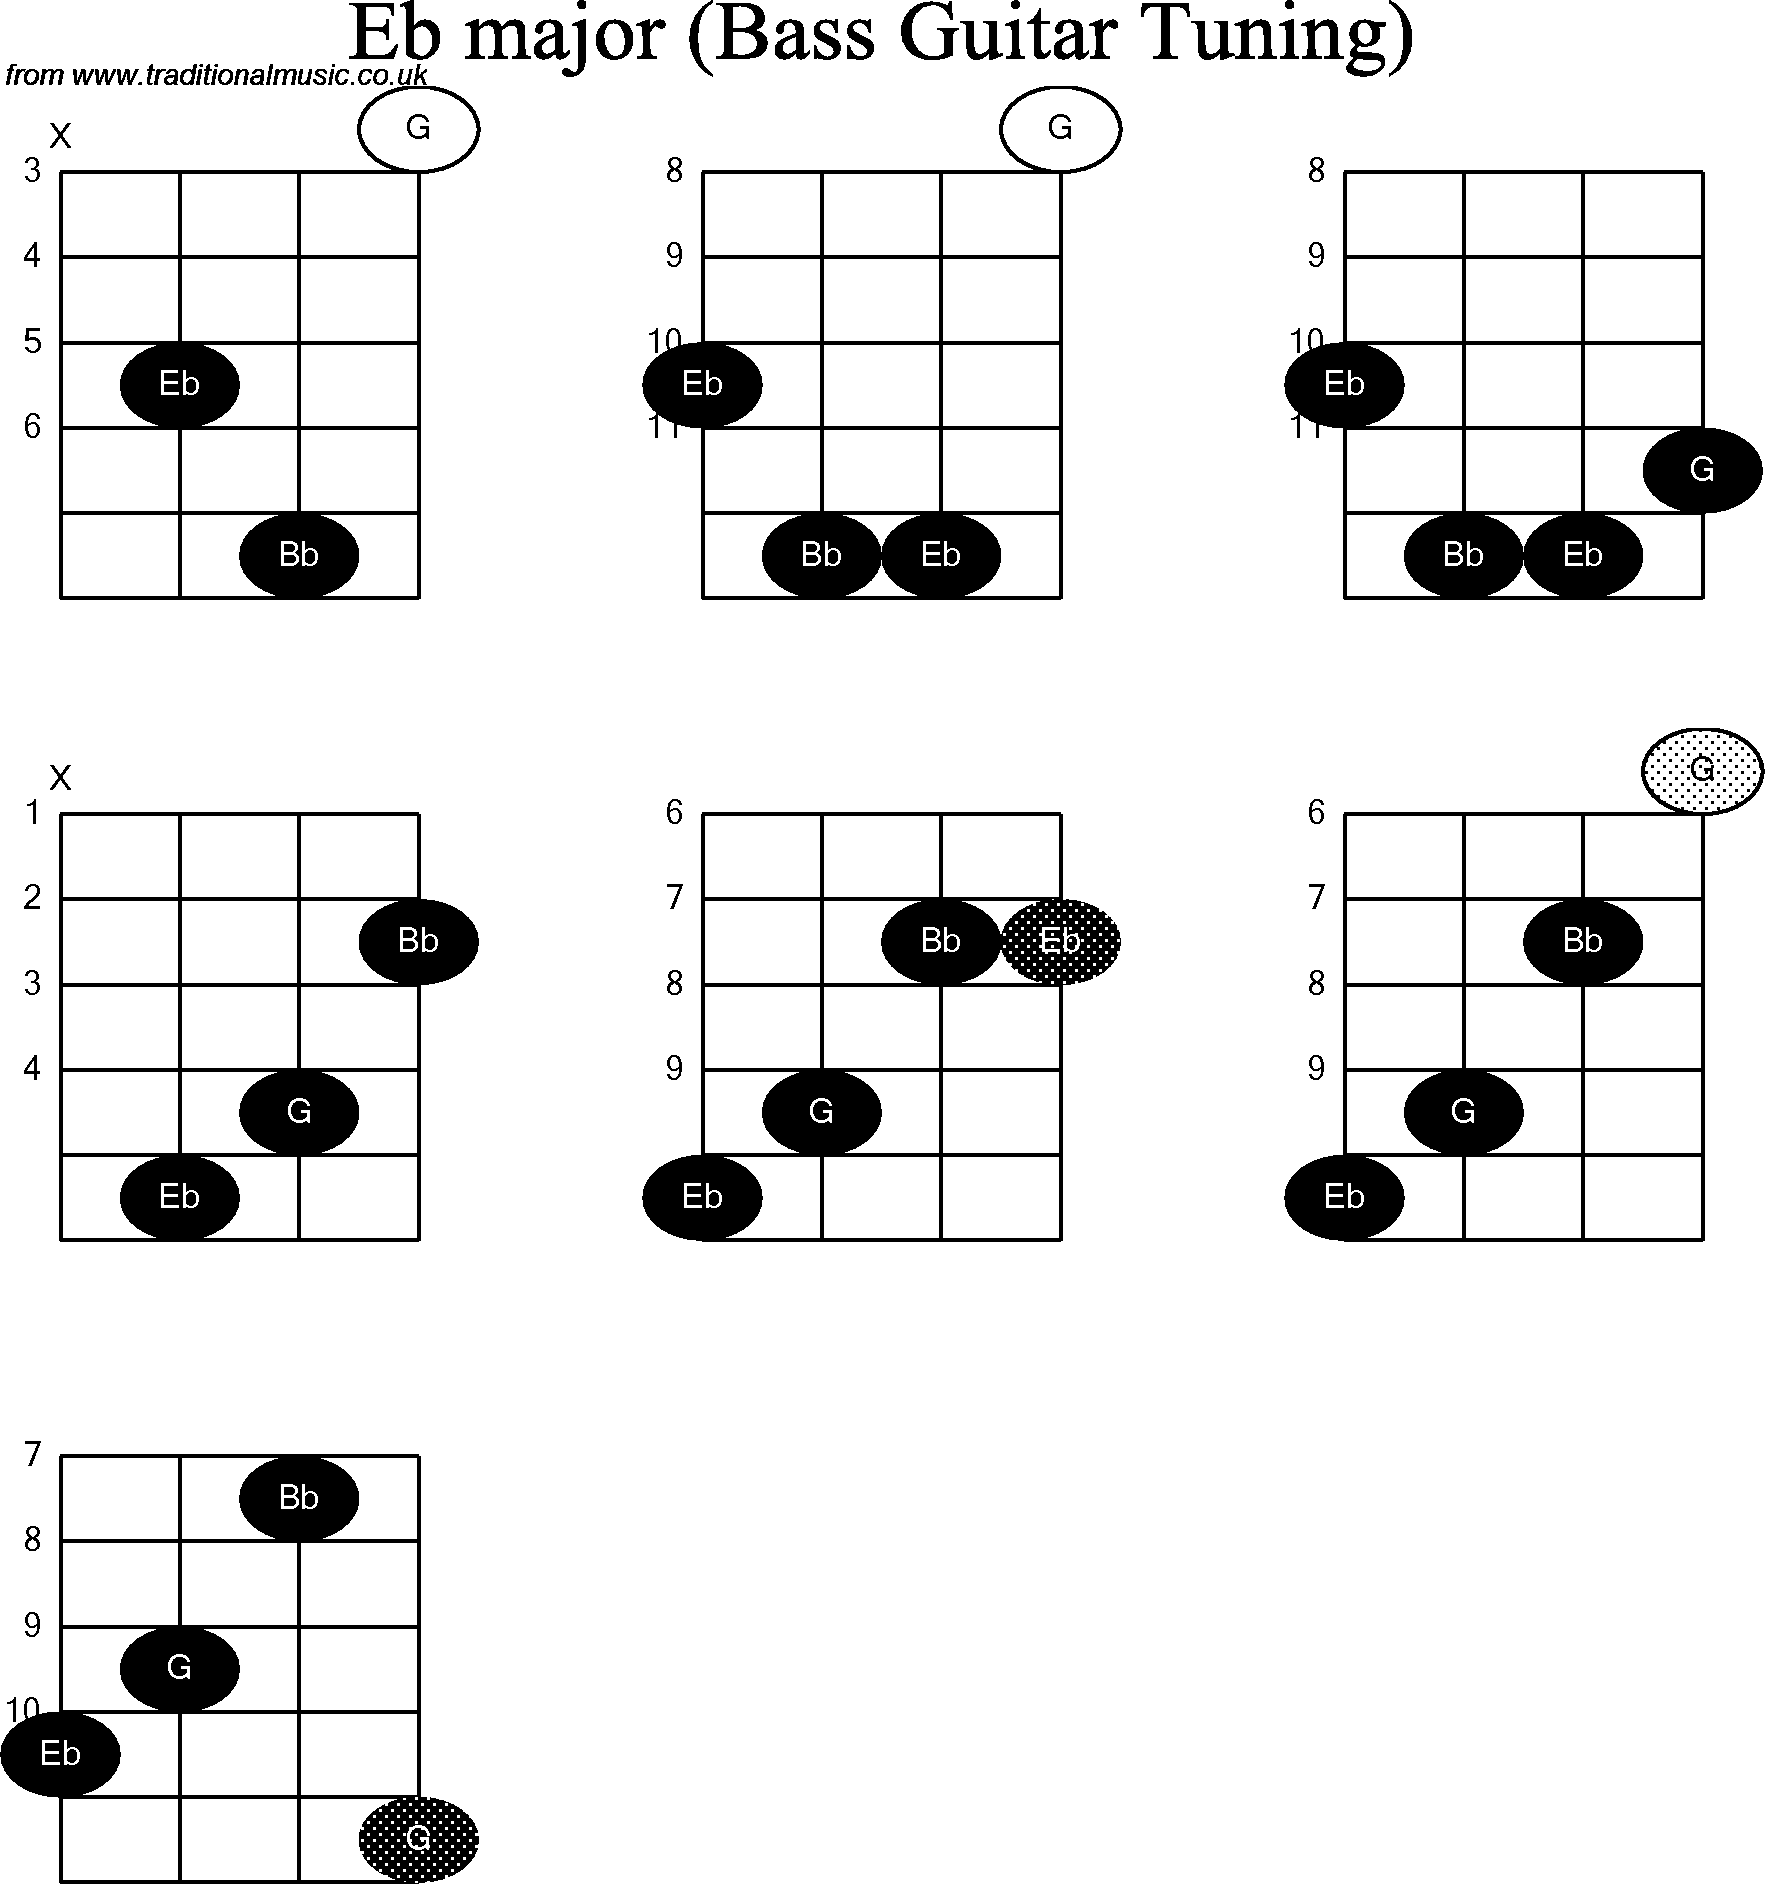 Bass Guitar Chord Diagrams For Eb